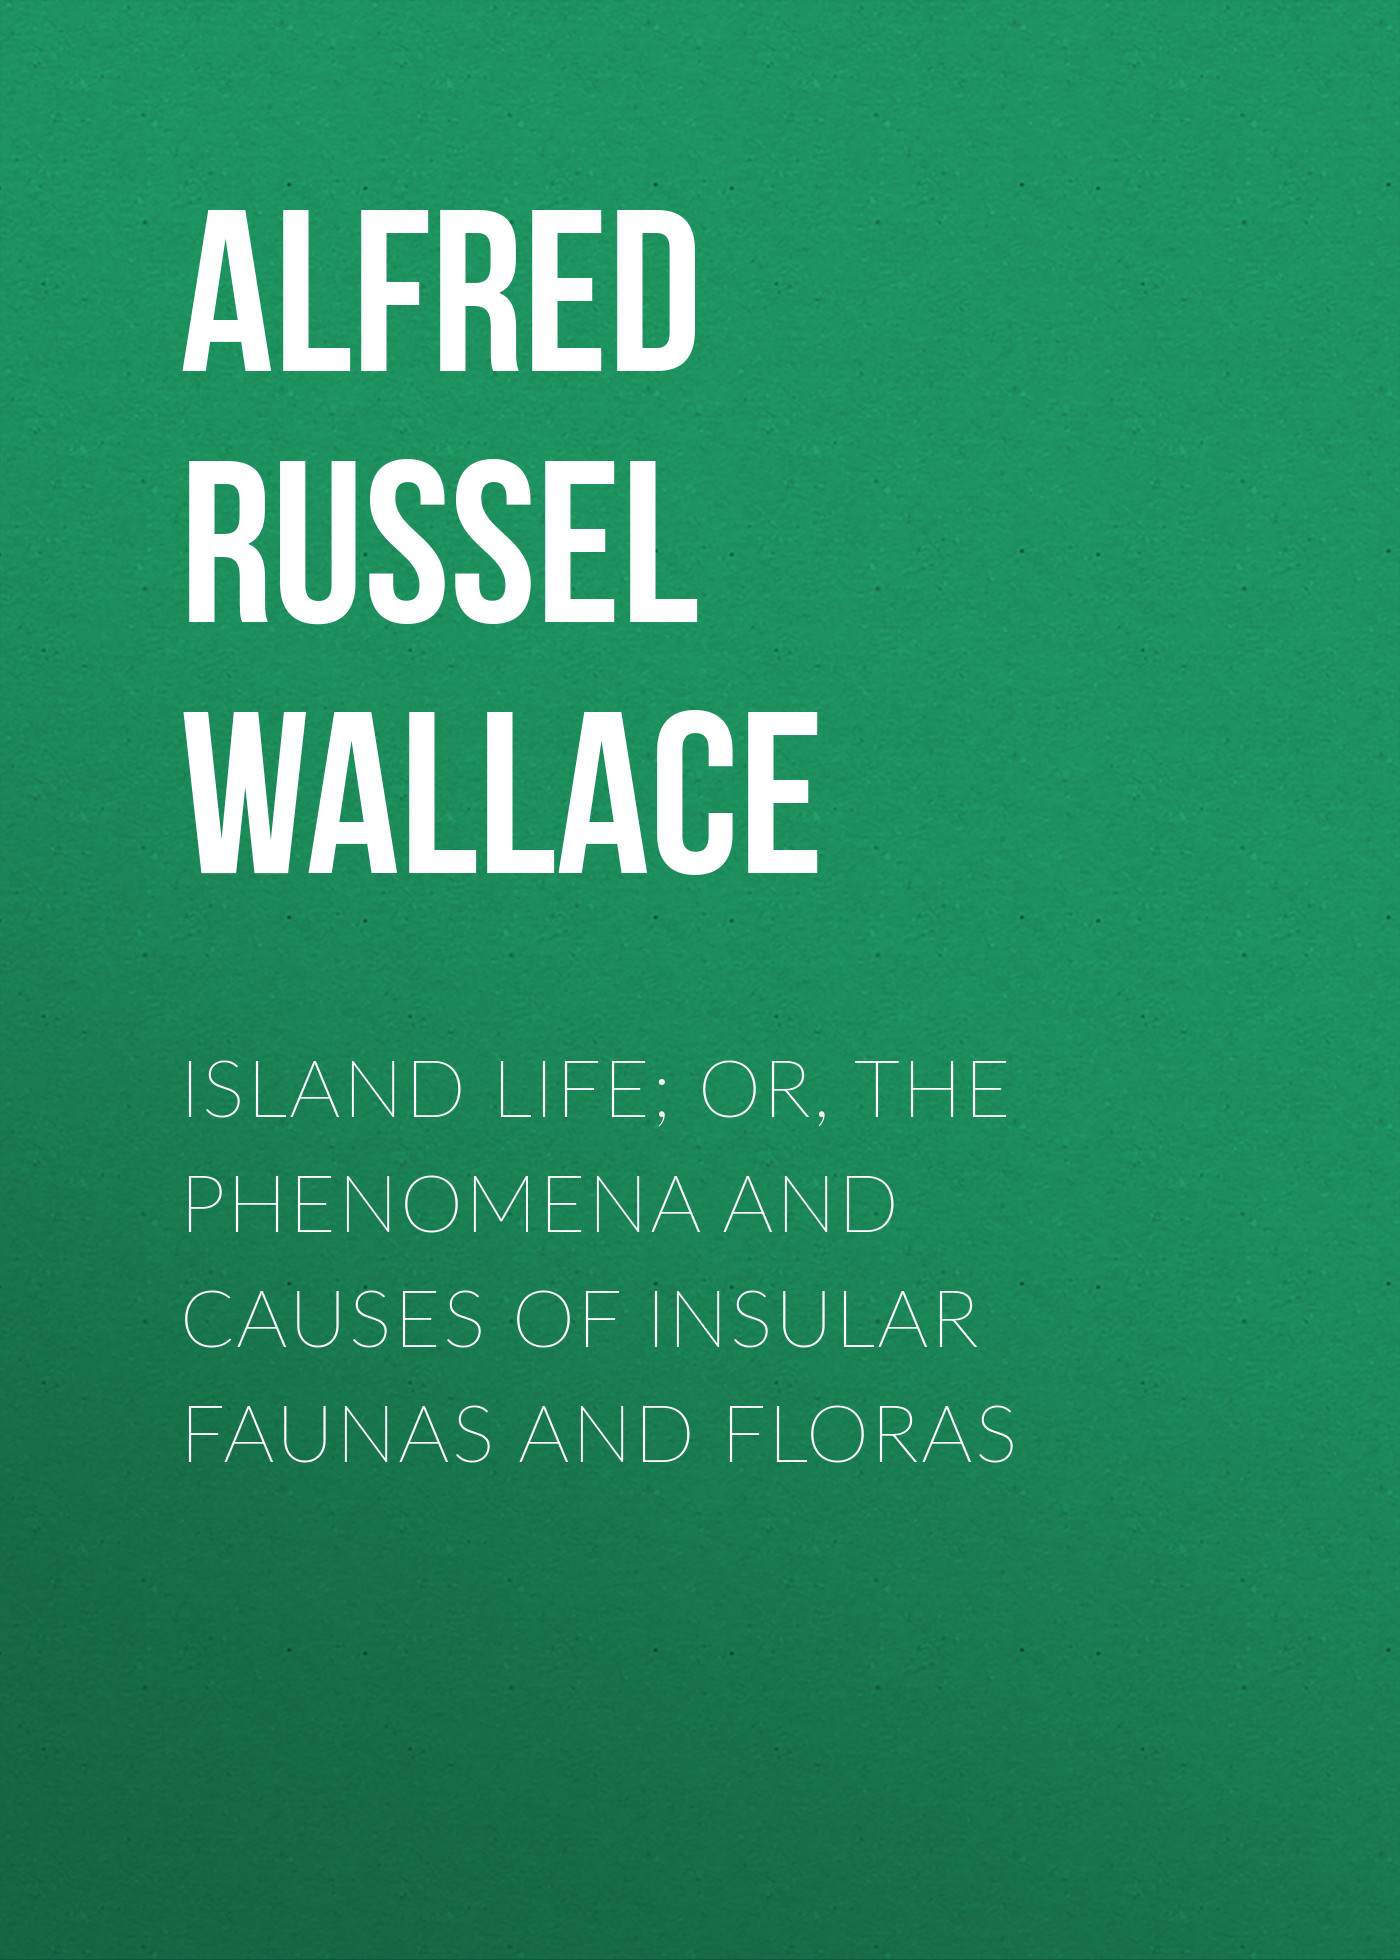 Alfred Russel Wallace Island Life; Or, The Phenomena and Causes of Insular Faunas and Floras alfred russel wallace der malayische archipel